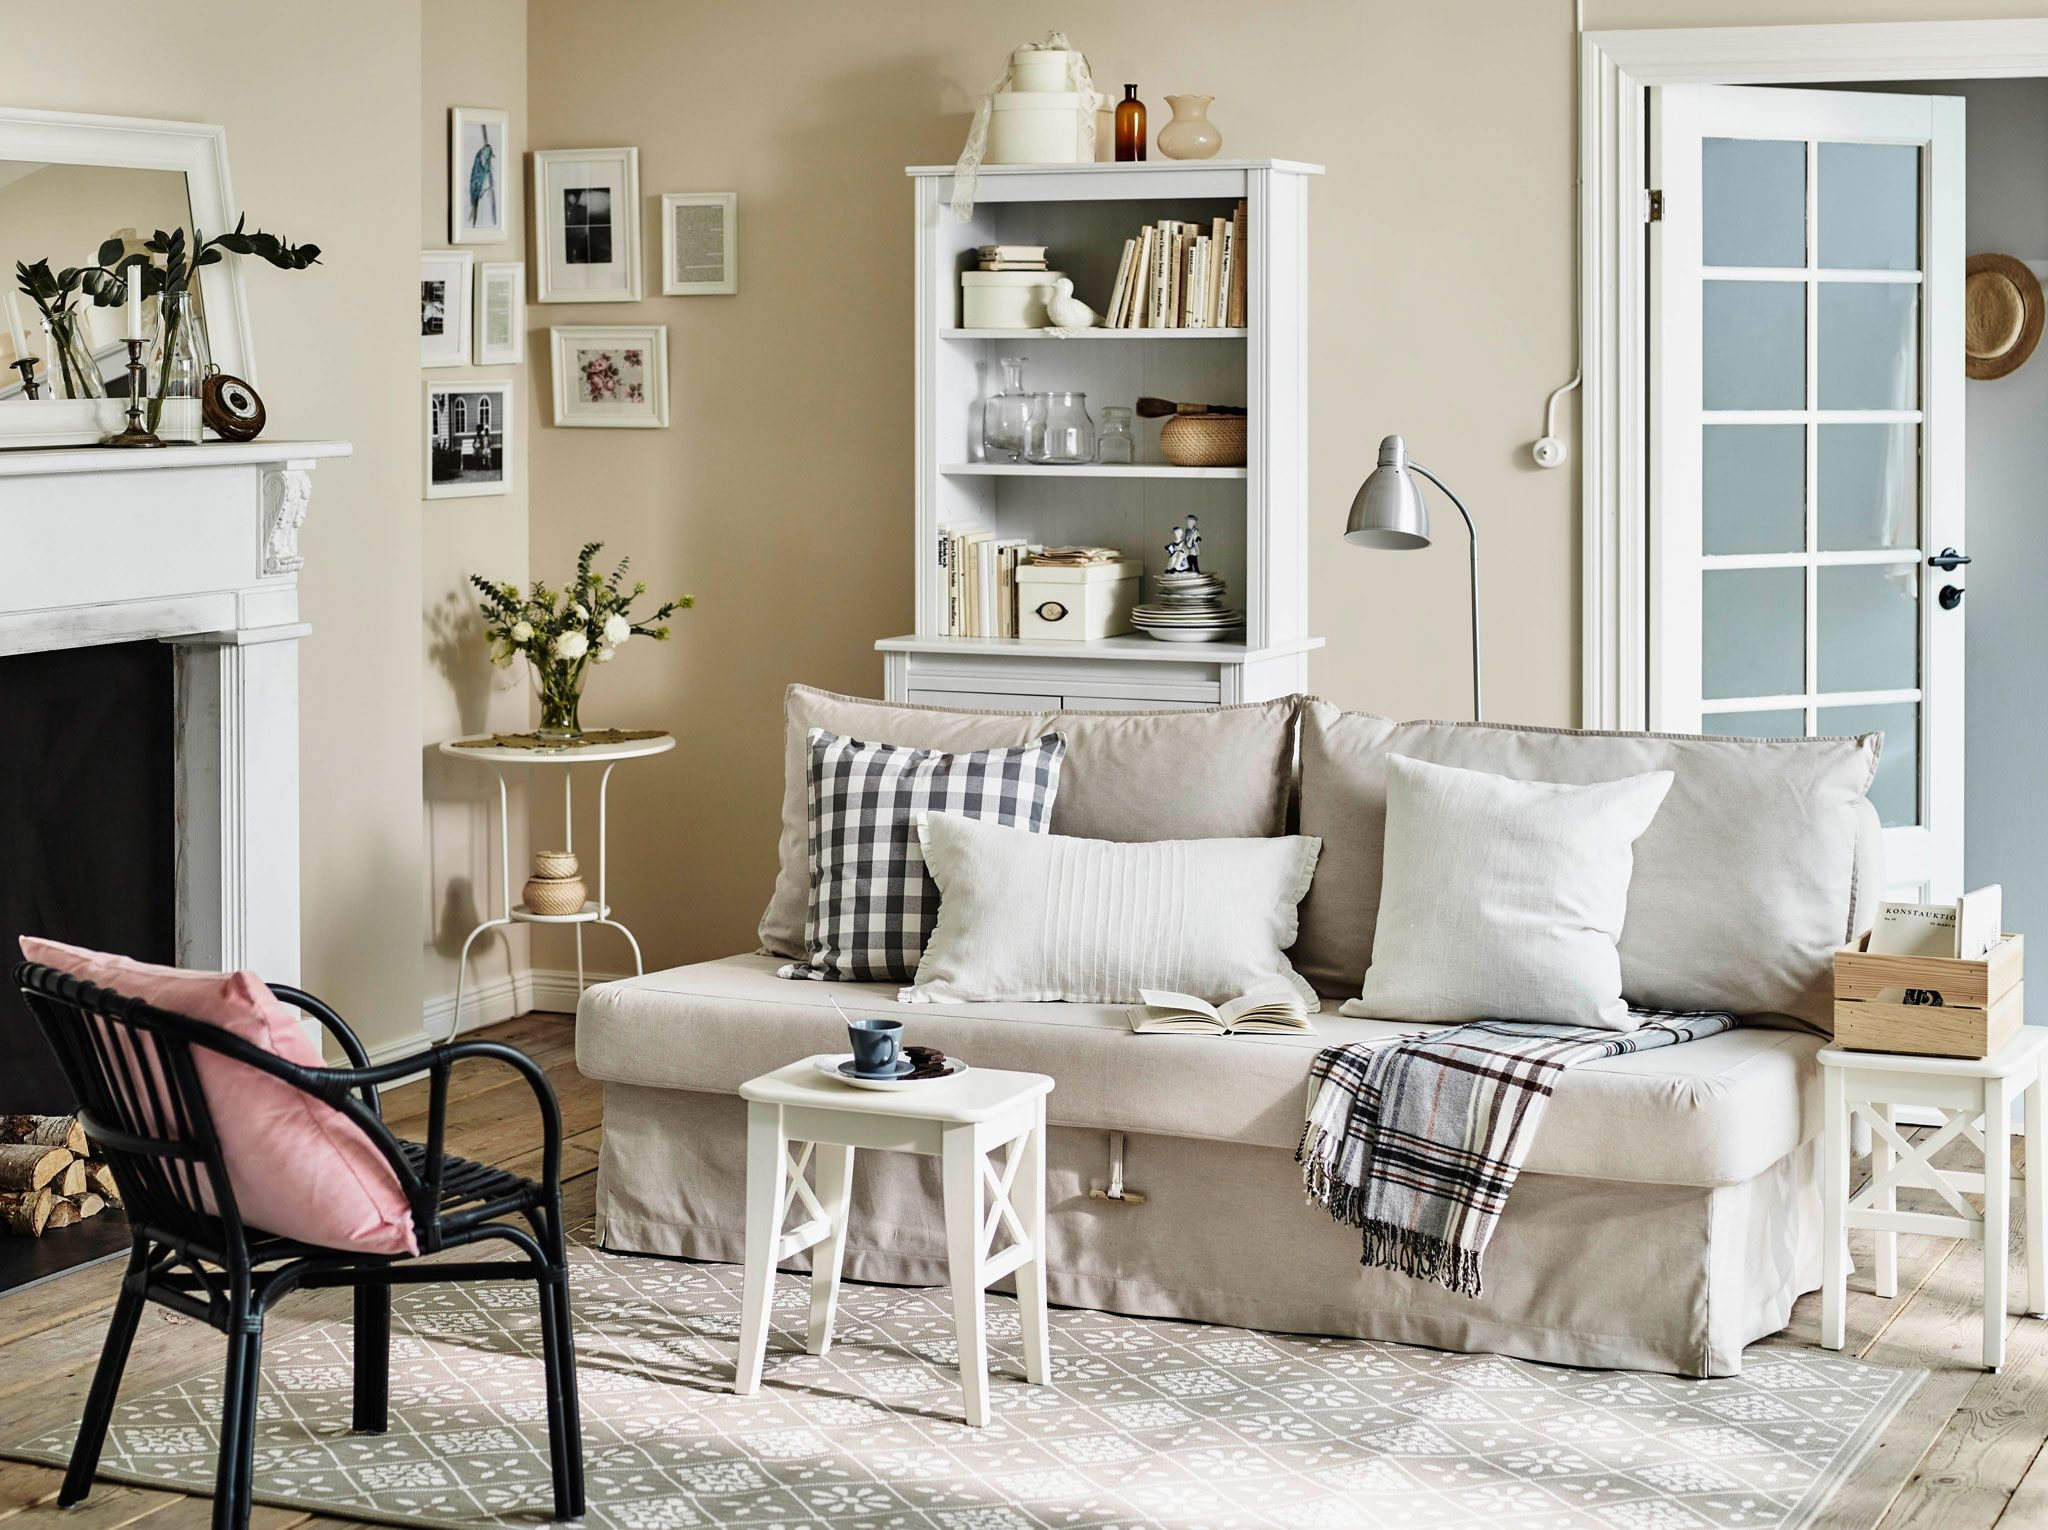 Decor Fabulous Impressive Ikea Ireland With Outstanding Design For Home Furnitures